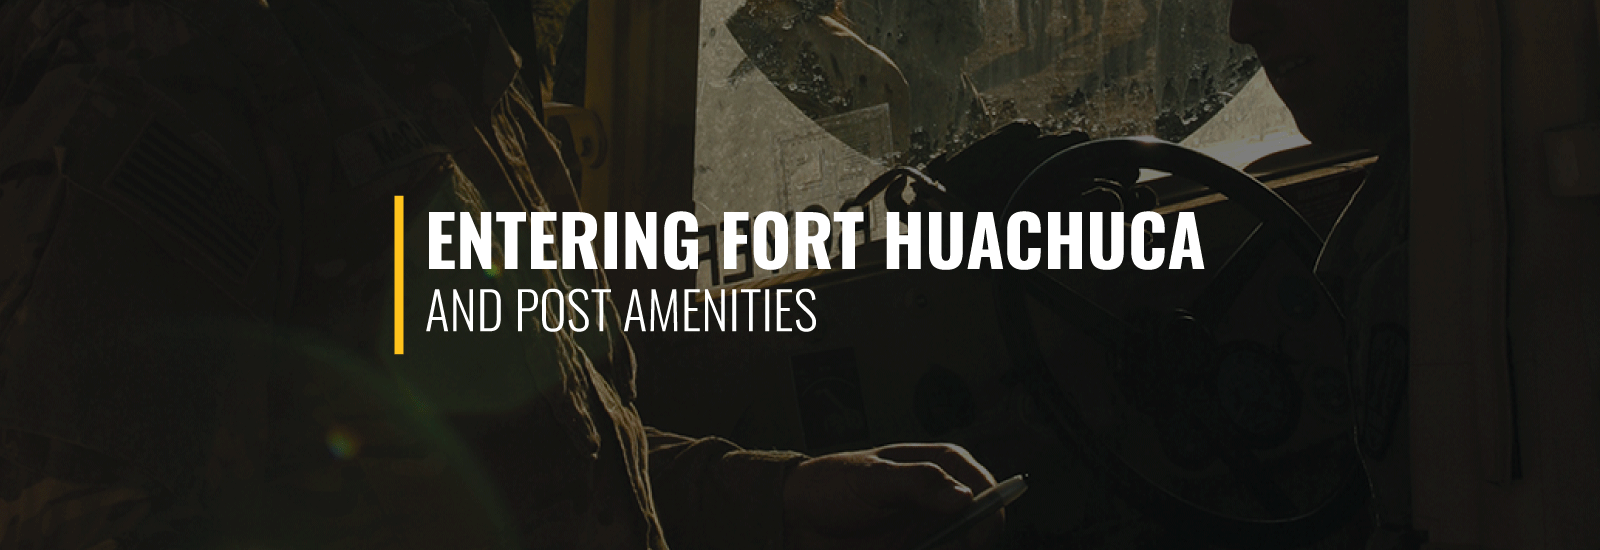 Entering Fort Huachuca and Post Amenities